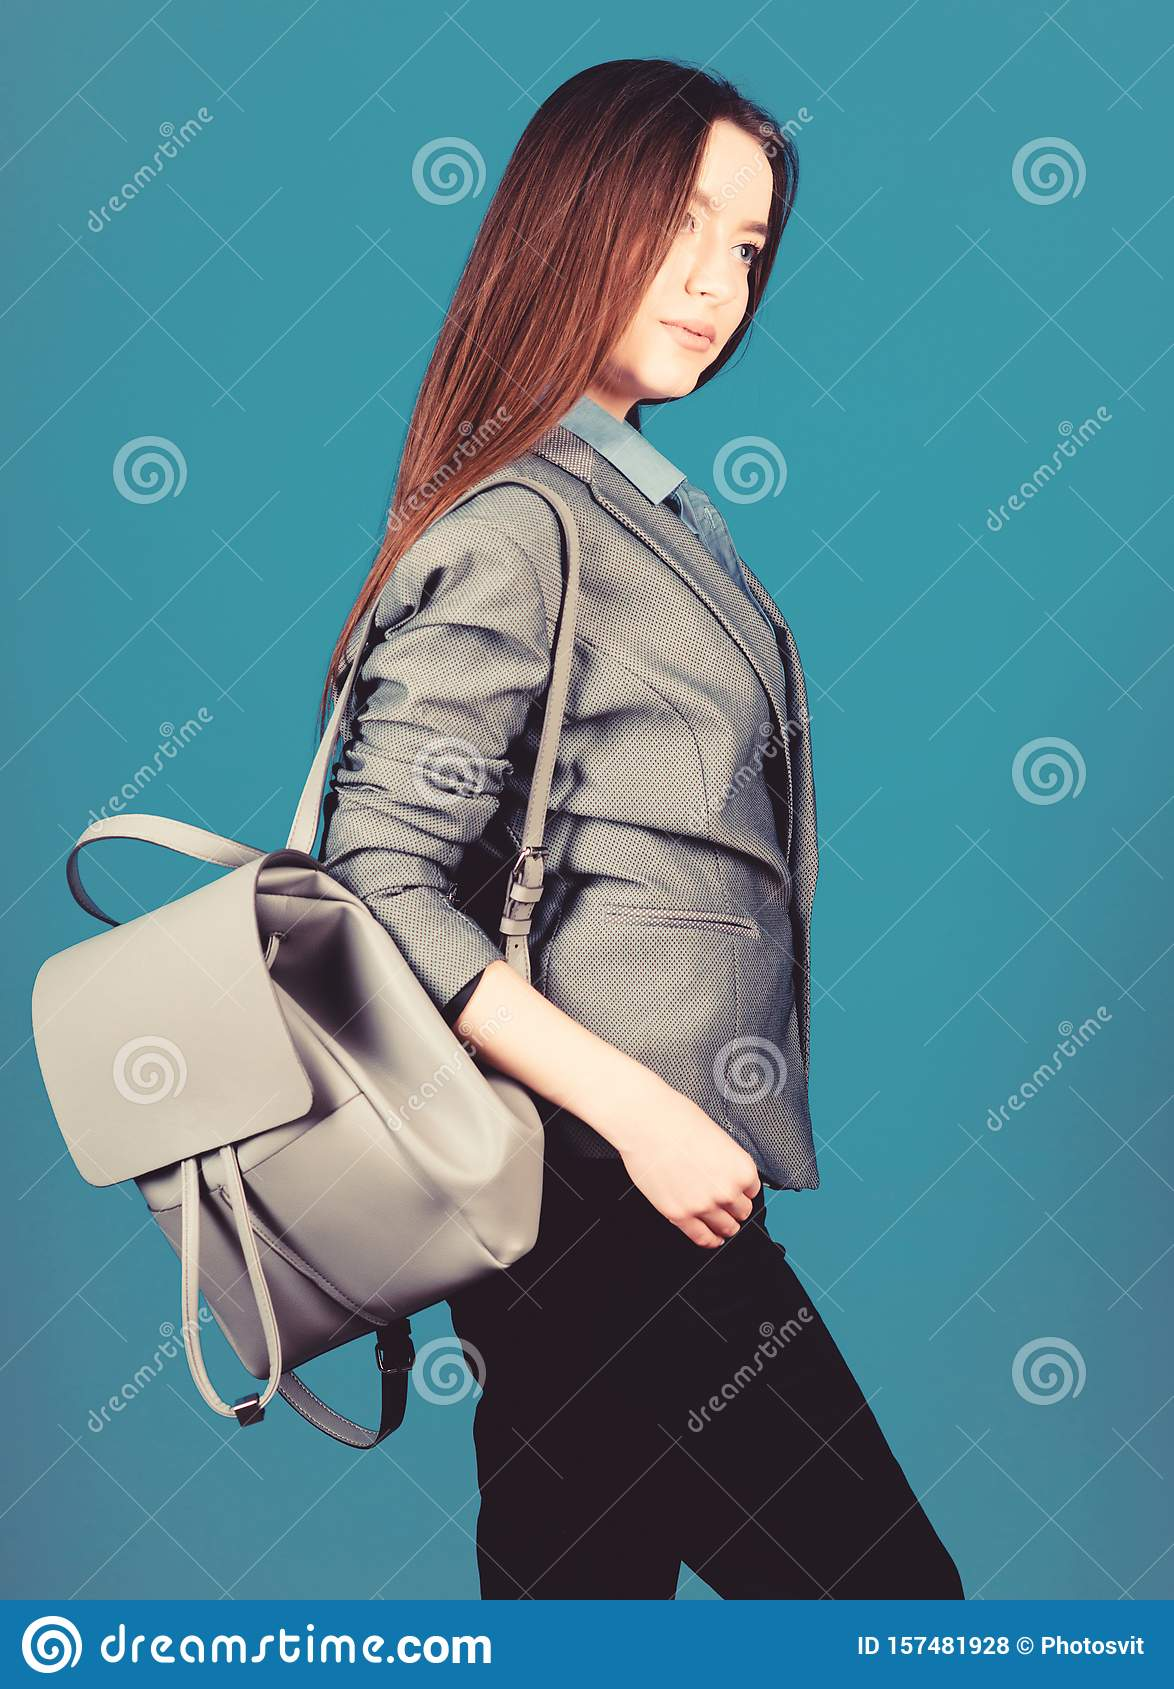 Girl student in formal clothes. Backpack fashion trend. Woman with leather knapsack. Stylish woman in jacket with